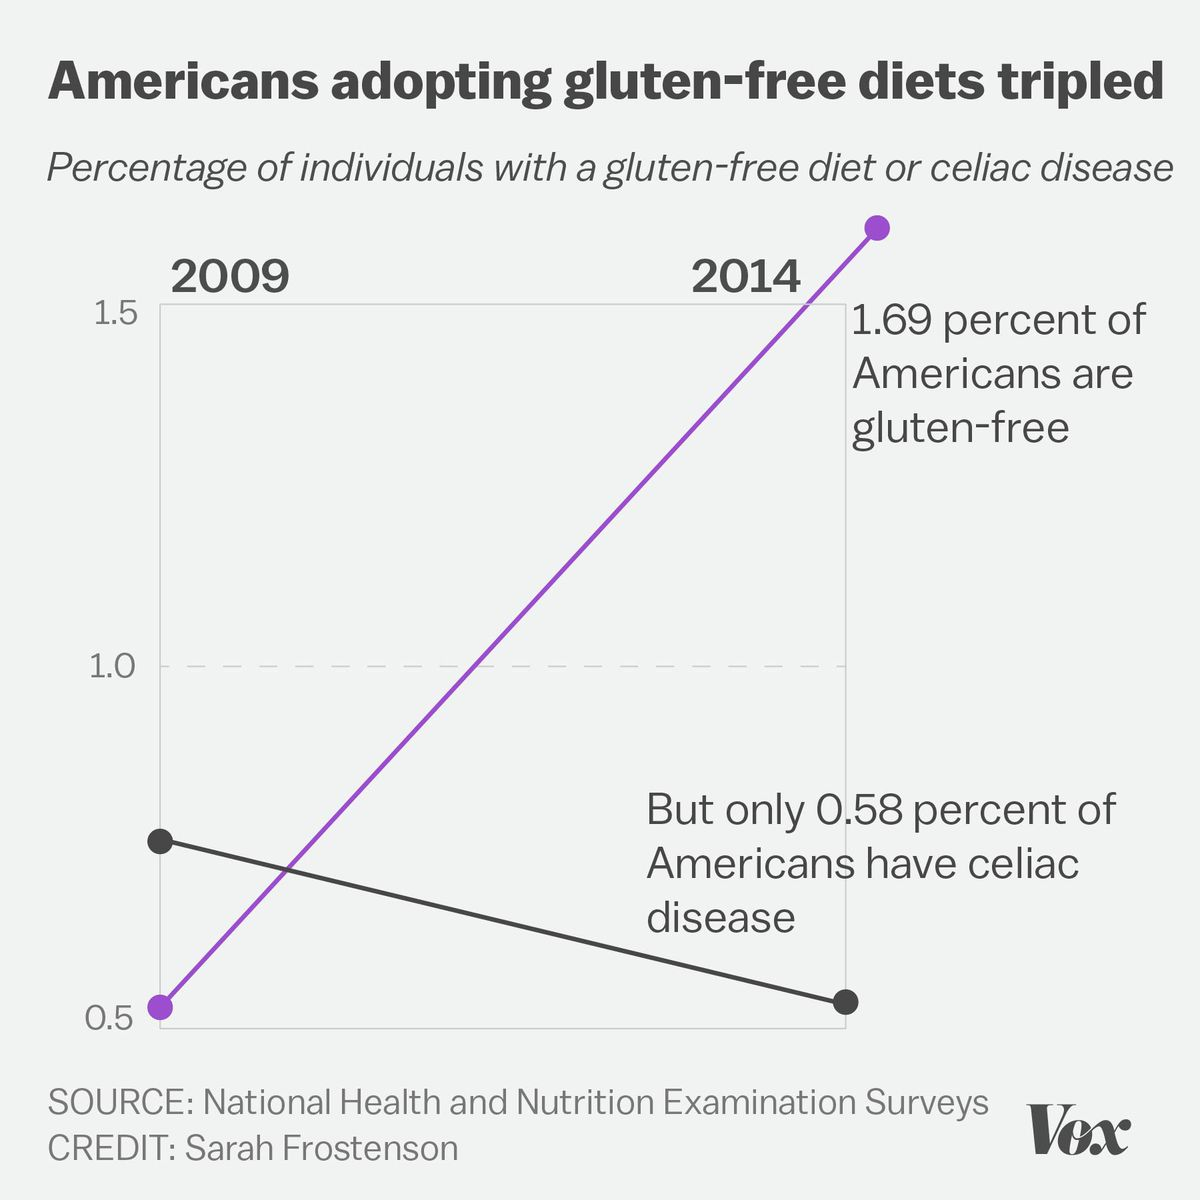 Chart showing gluten-free diets have tripled since 2009, but the number of Americans with celiac disease has actually declined